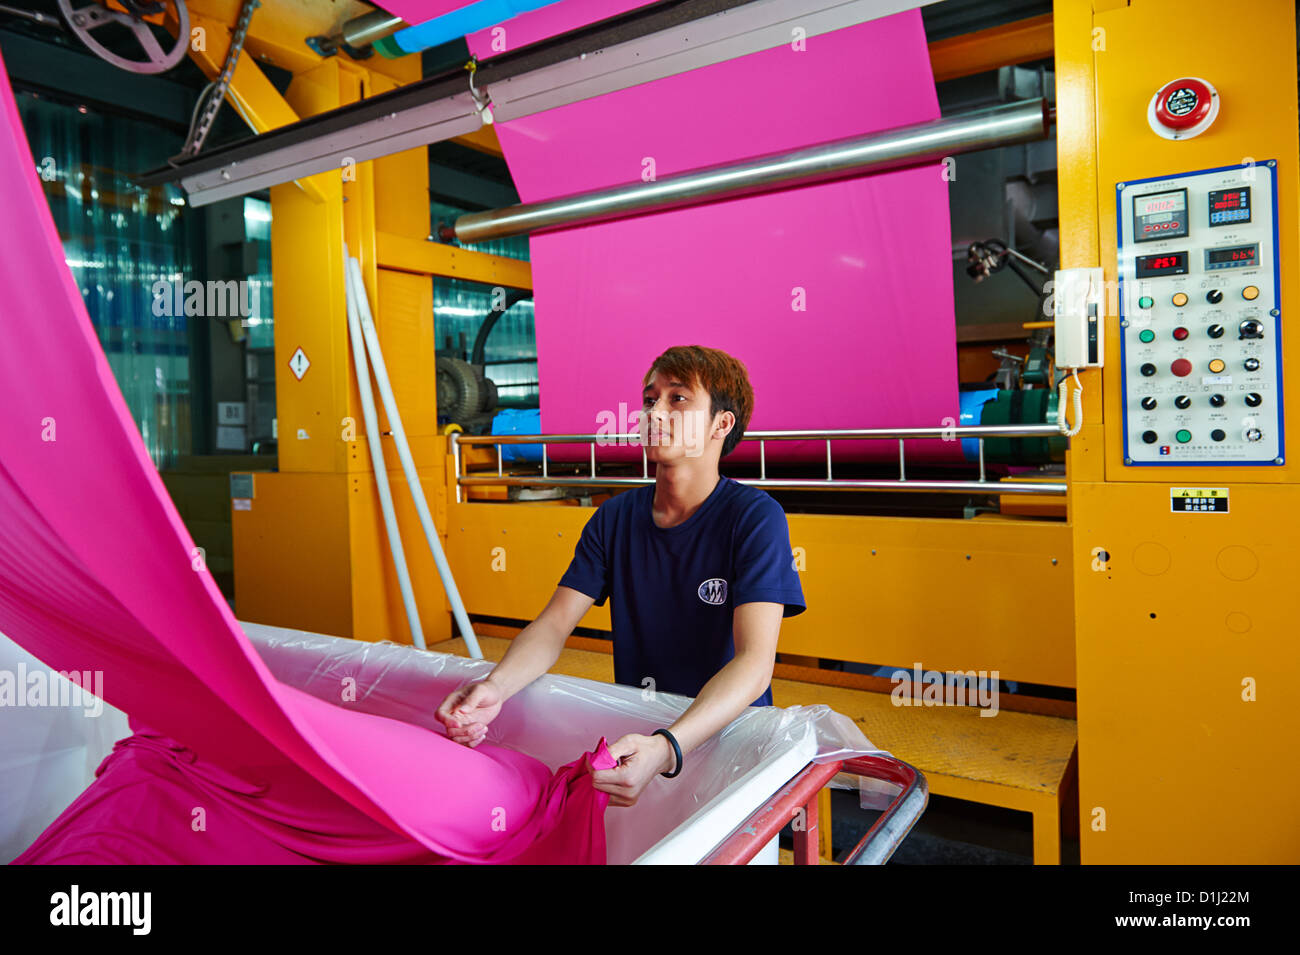 Workers pull and inspect newly pressed pink fabric into bins - Stock Image